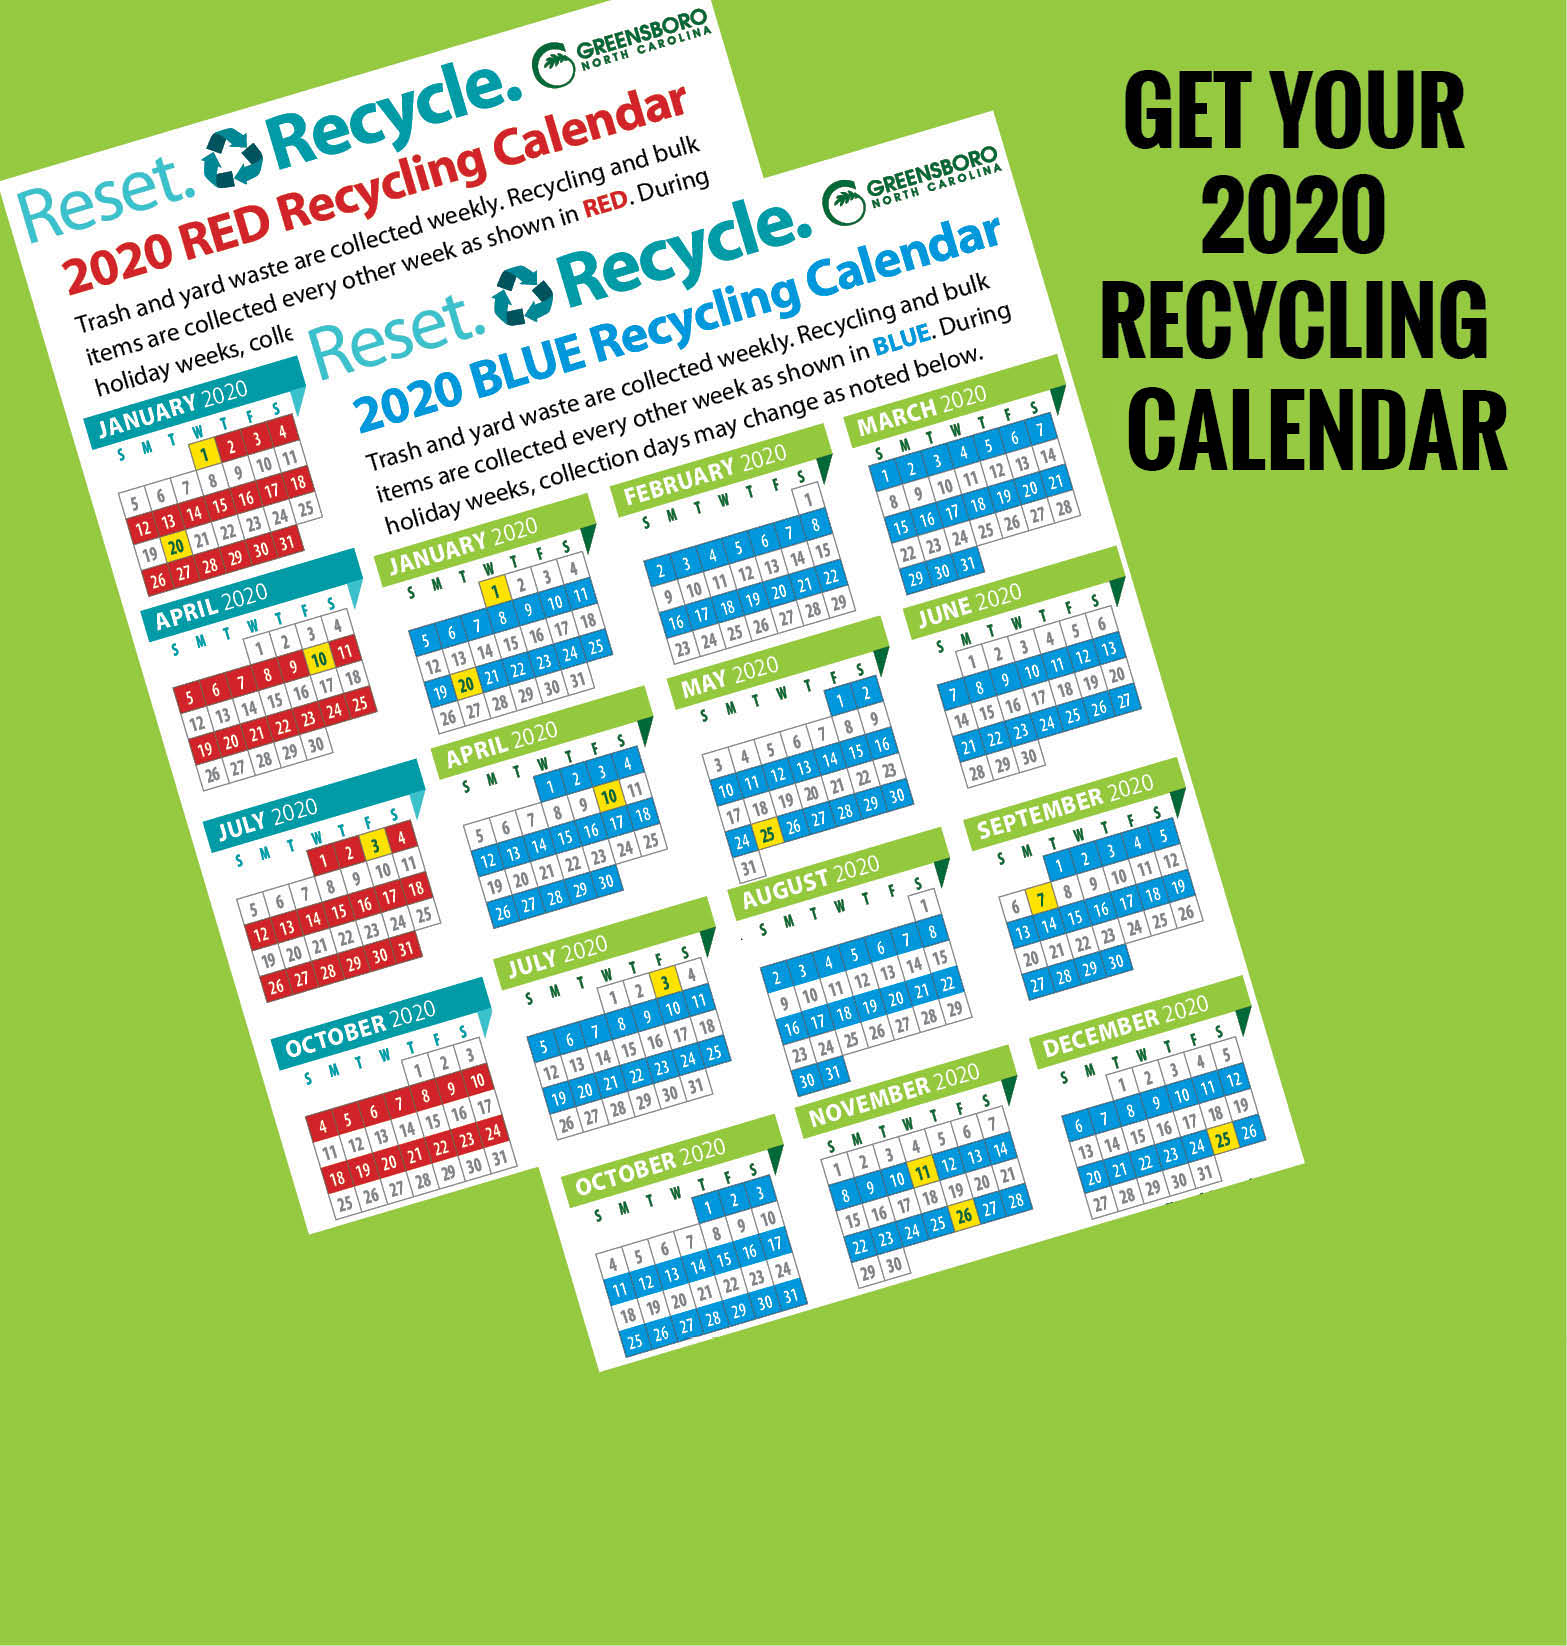 Spotlight recycling calendar image